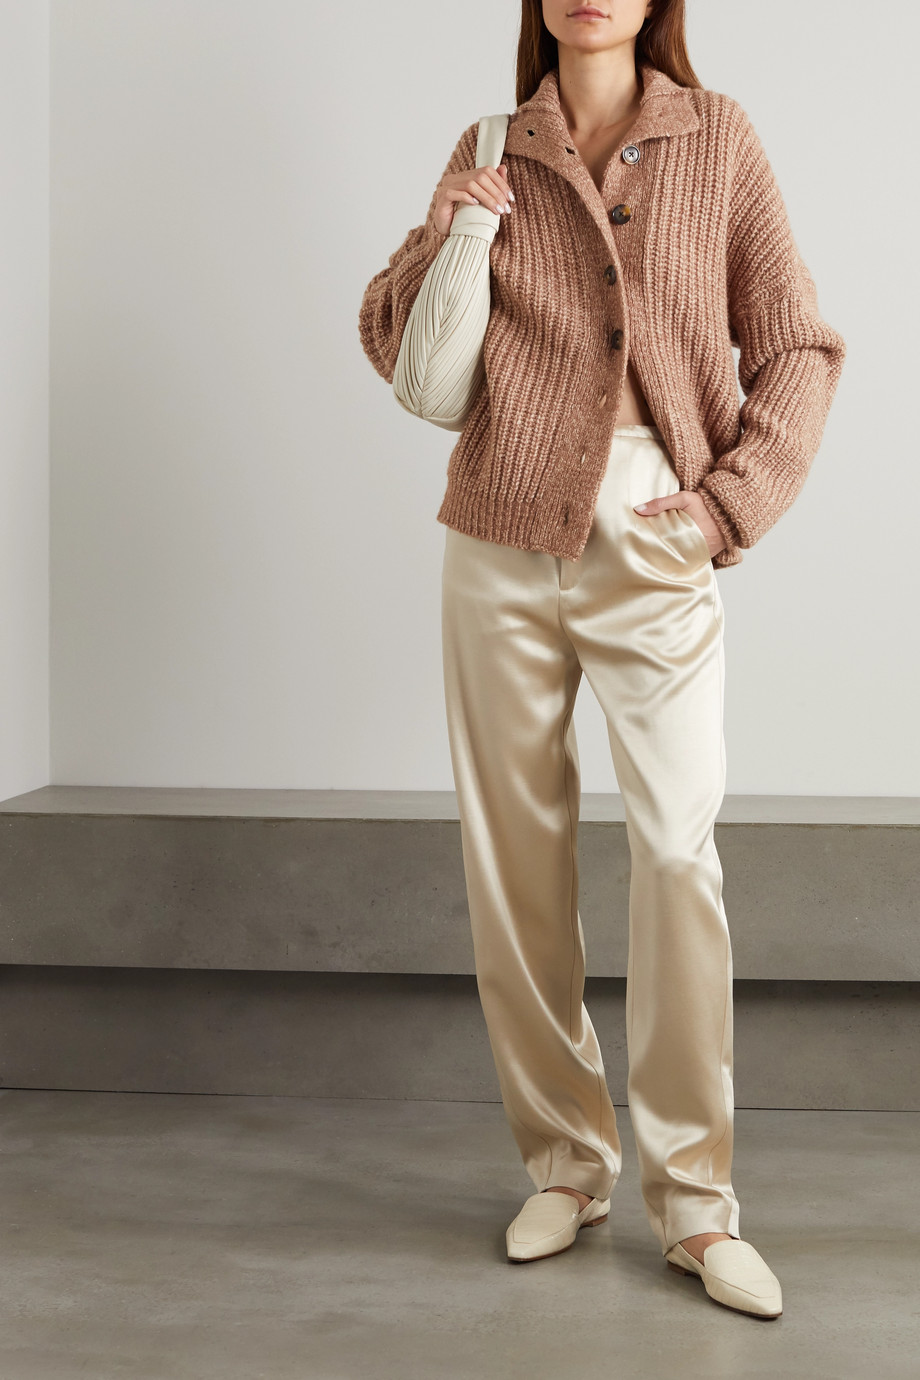 LOULOU STUDIO Canto gerippter Cardigan aus melierter Wolle